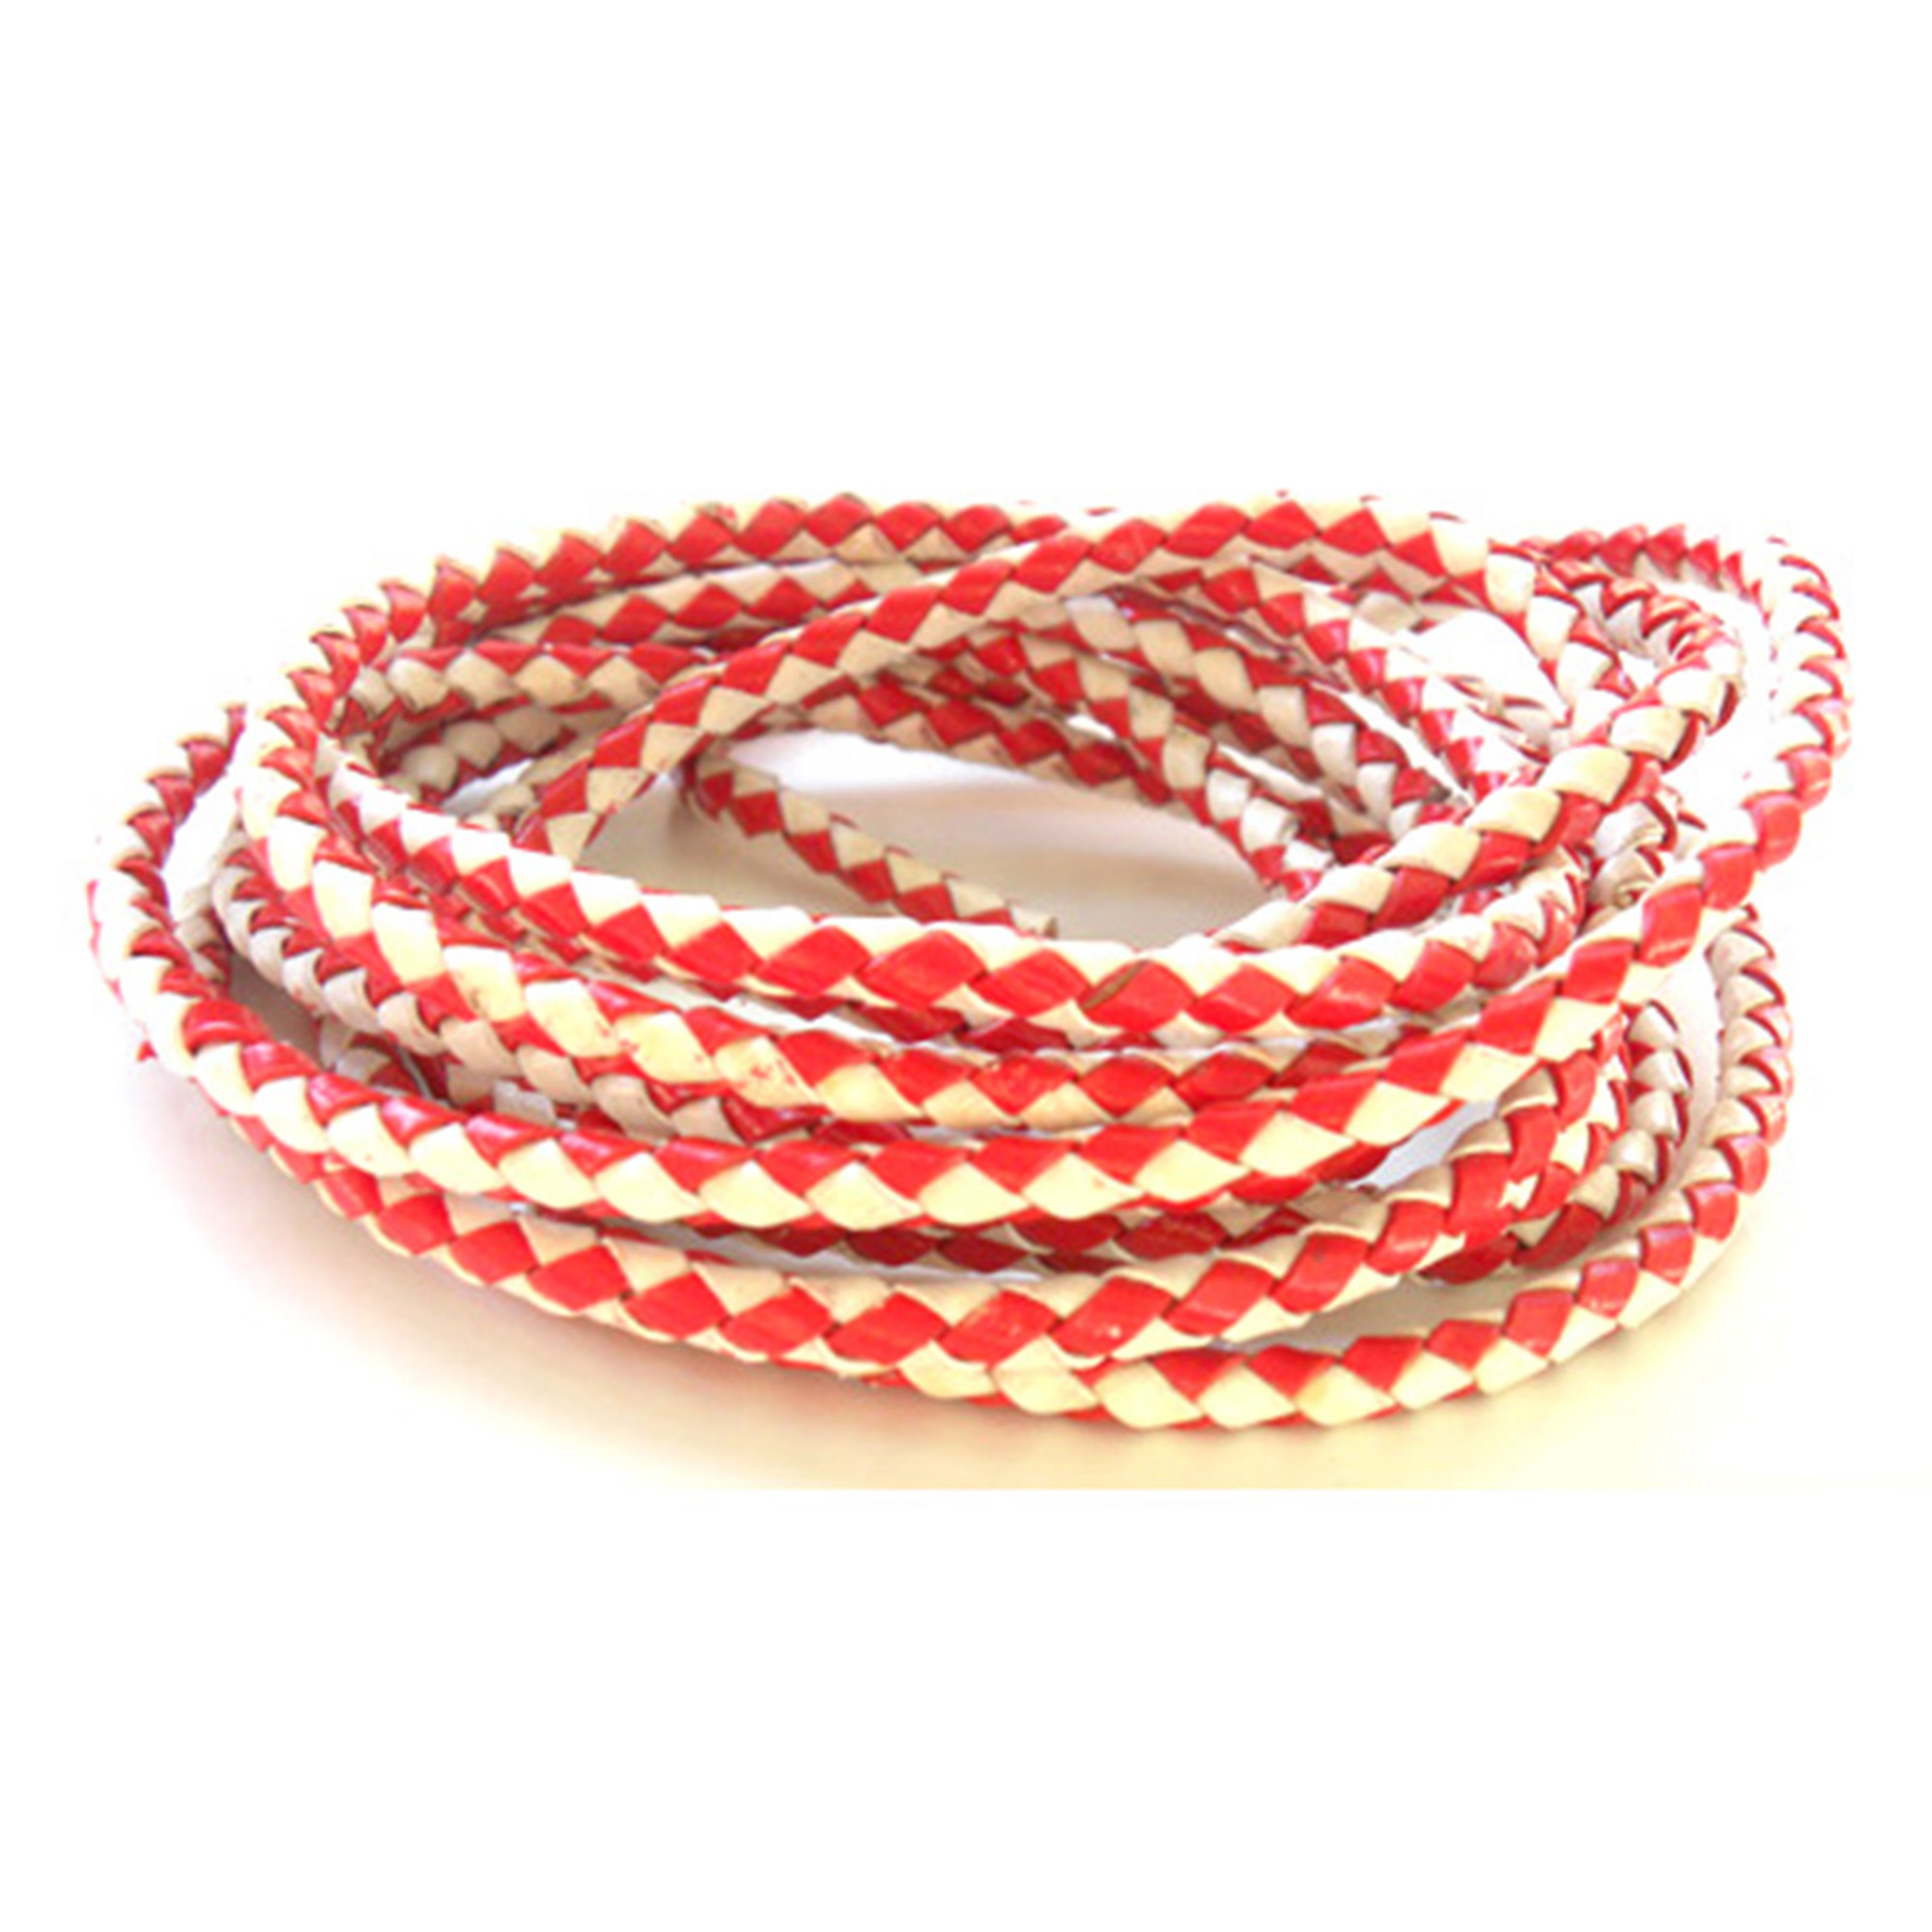 RED AND WHITE ROUND BRAIDED STRINGS